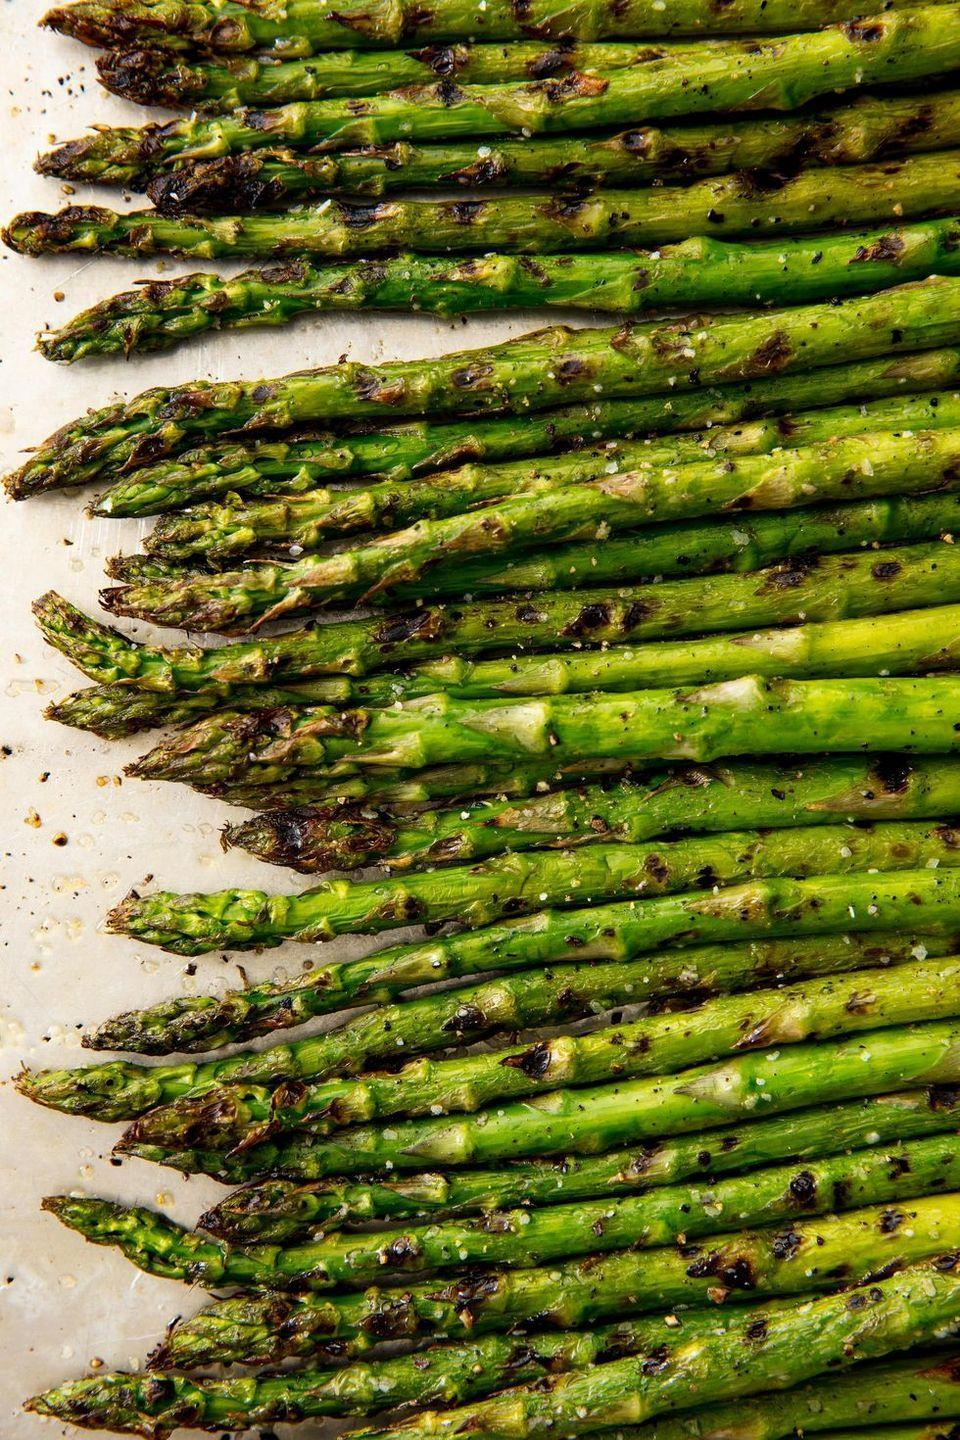 """<p>When it's nice out, always grill your vegetables. Those grill marks add SO. MUCH. FLAVOUR. And can make pretty much any green vegetable feel like less of a chore.</p><p>Get the <a href=""""https://www.delish.com/uk/cooking/recipes/a31802776/best-grilled-asparagus-recipe/"""" rel=""""nofollow noopener"""" target=""""_blank"""" data-ylk=""""slk:Grilled Asparagus"""" class=""""link rapid-noclick-resp"""">Grilled Asparagus</a> recipe.</p>"""